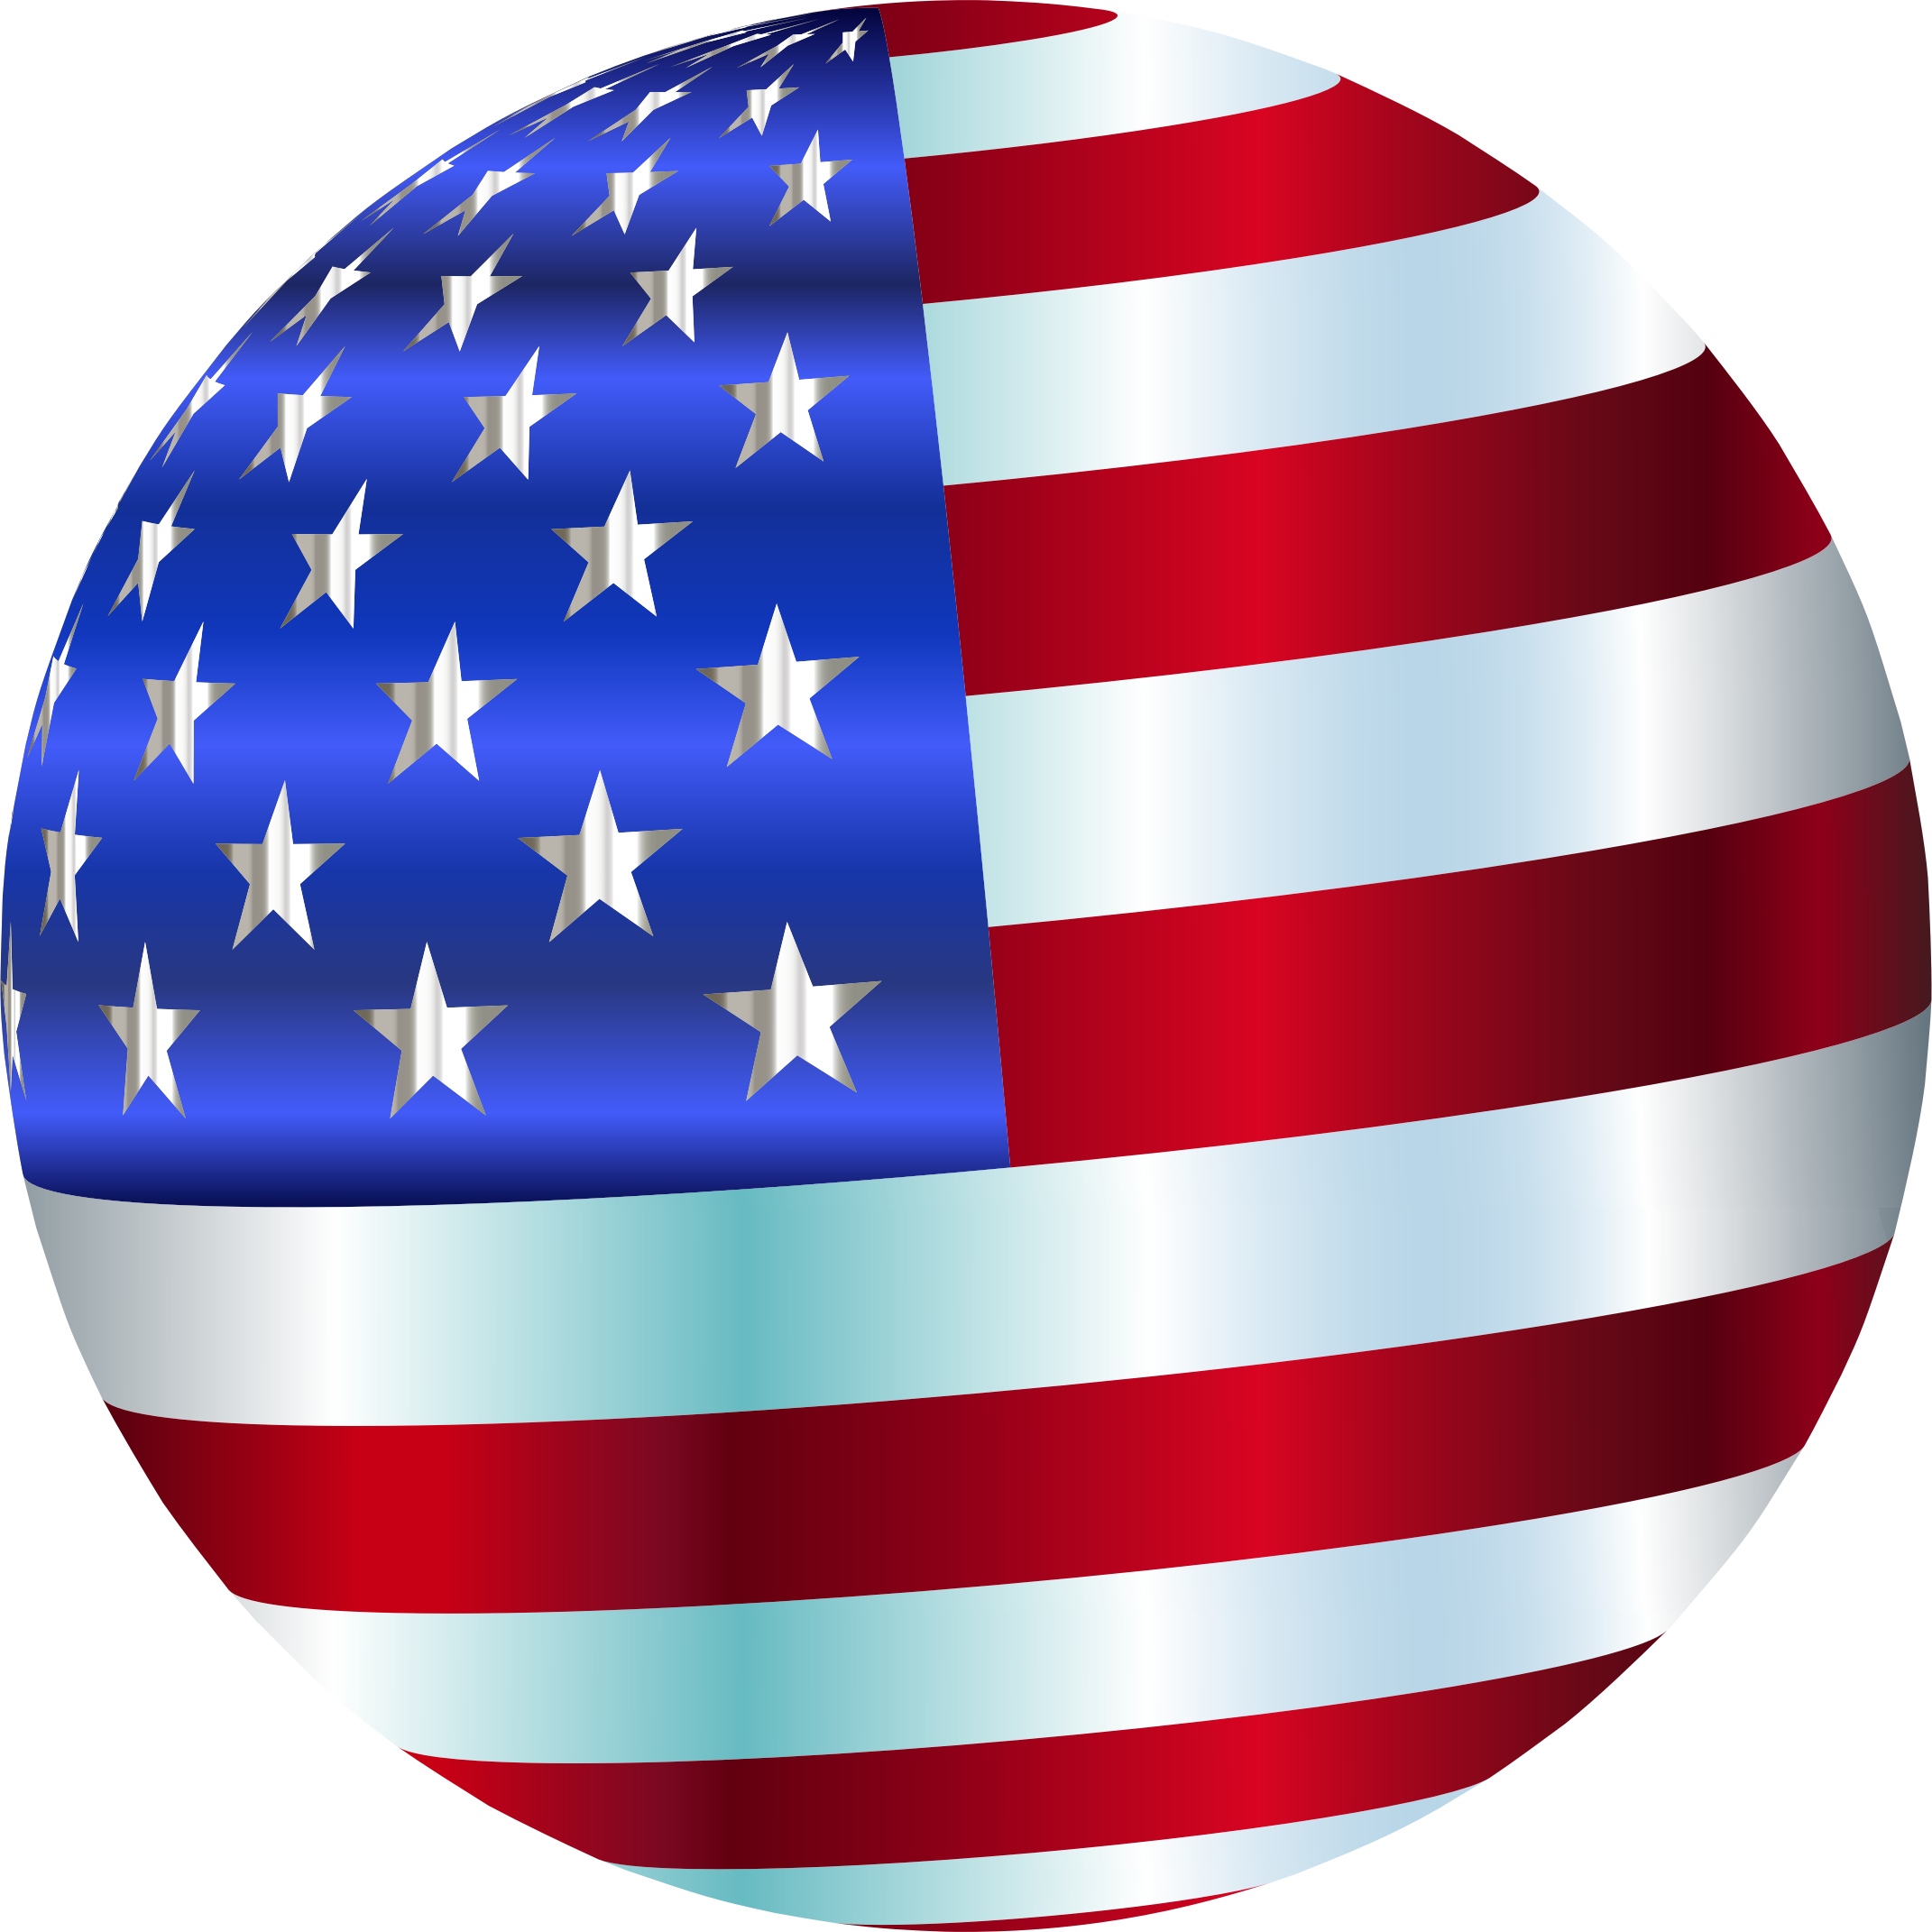 Clipart usa sphere enhanced. Clip art us flag